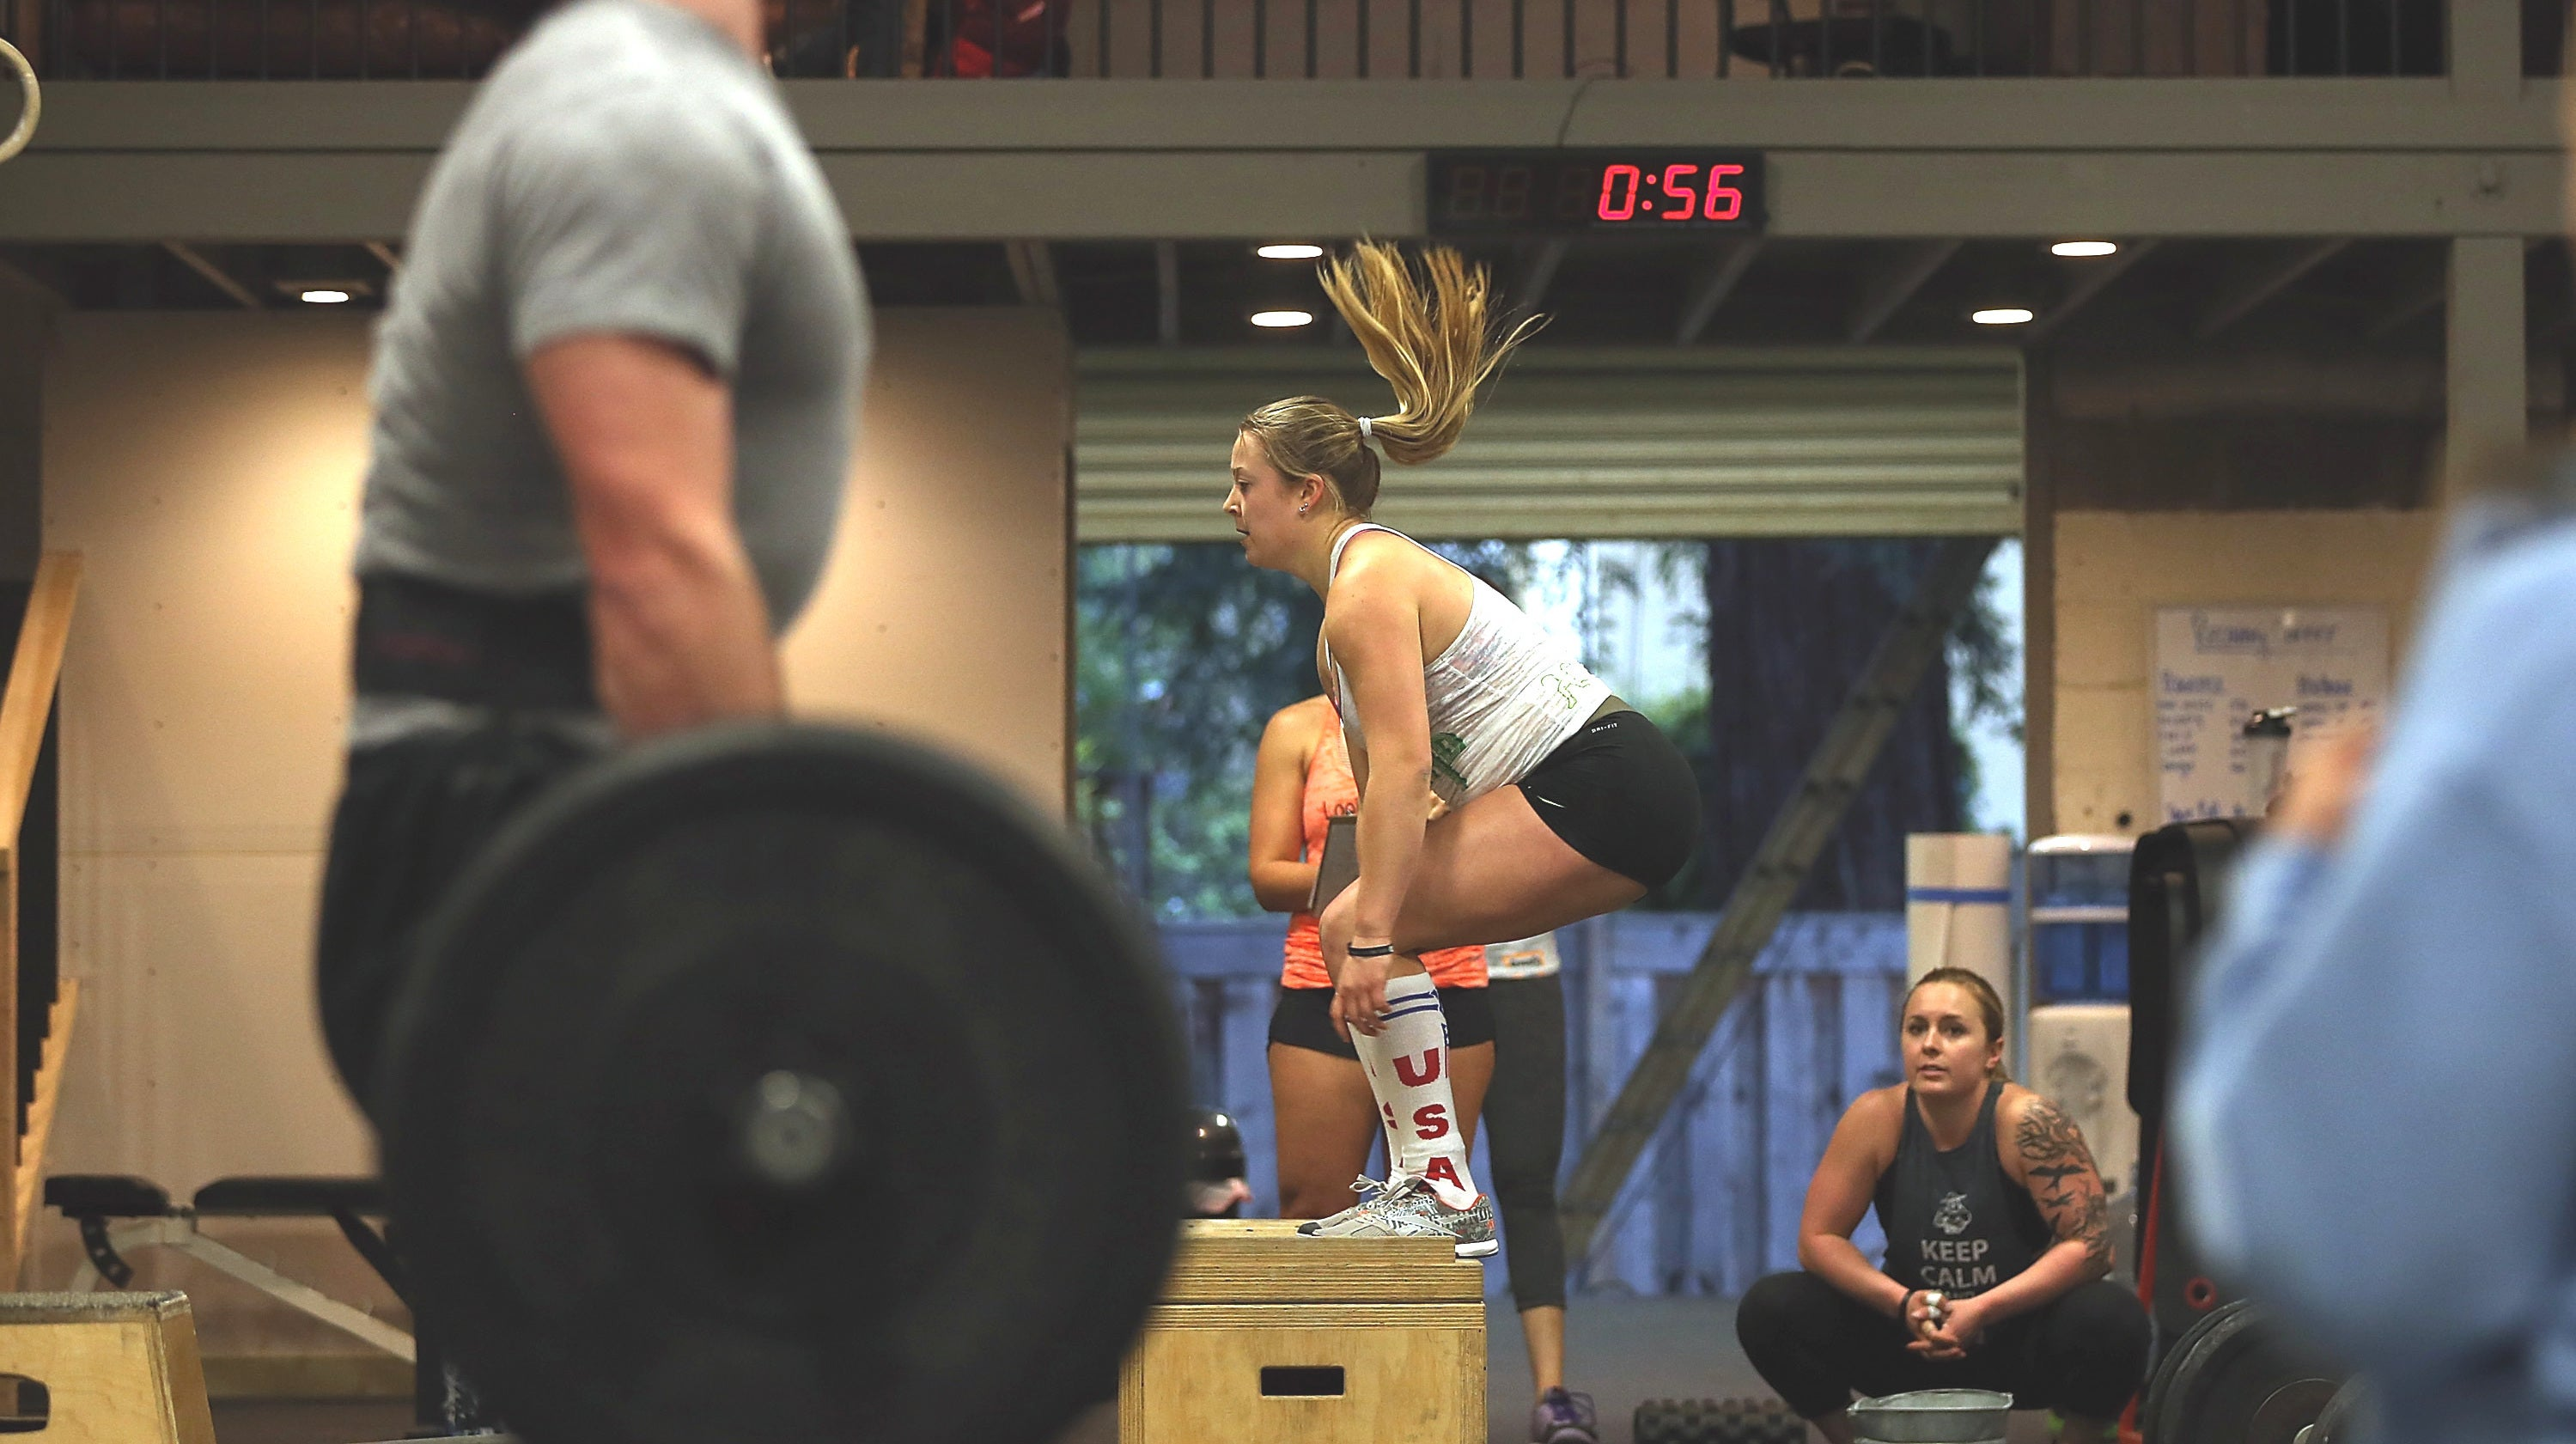 How To Do Box Jumps Without Freaking Out